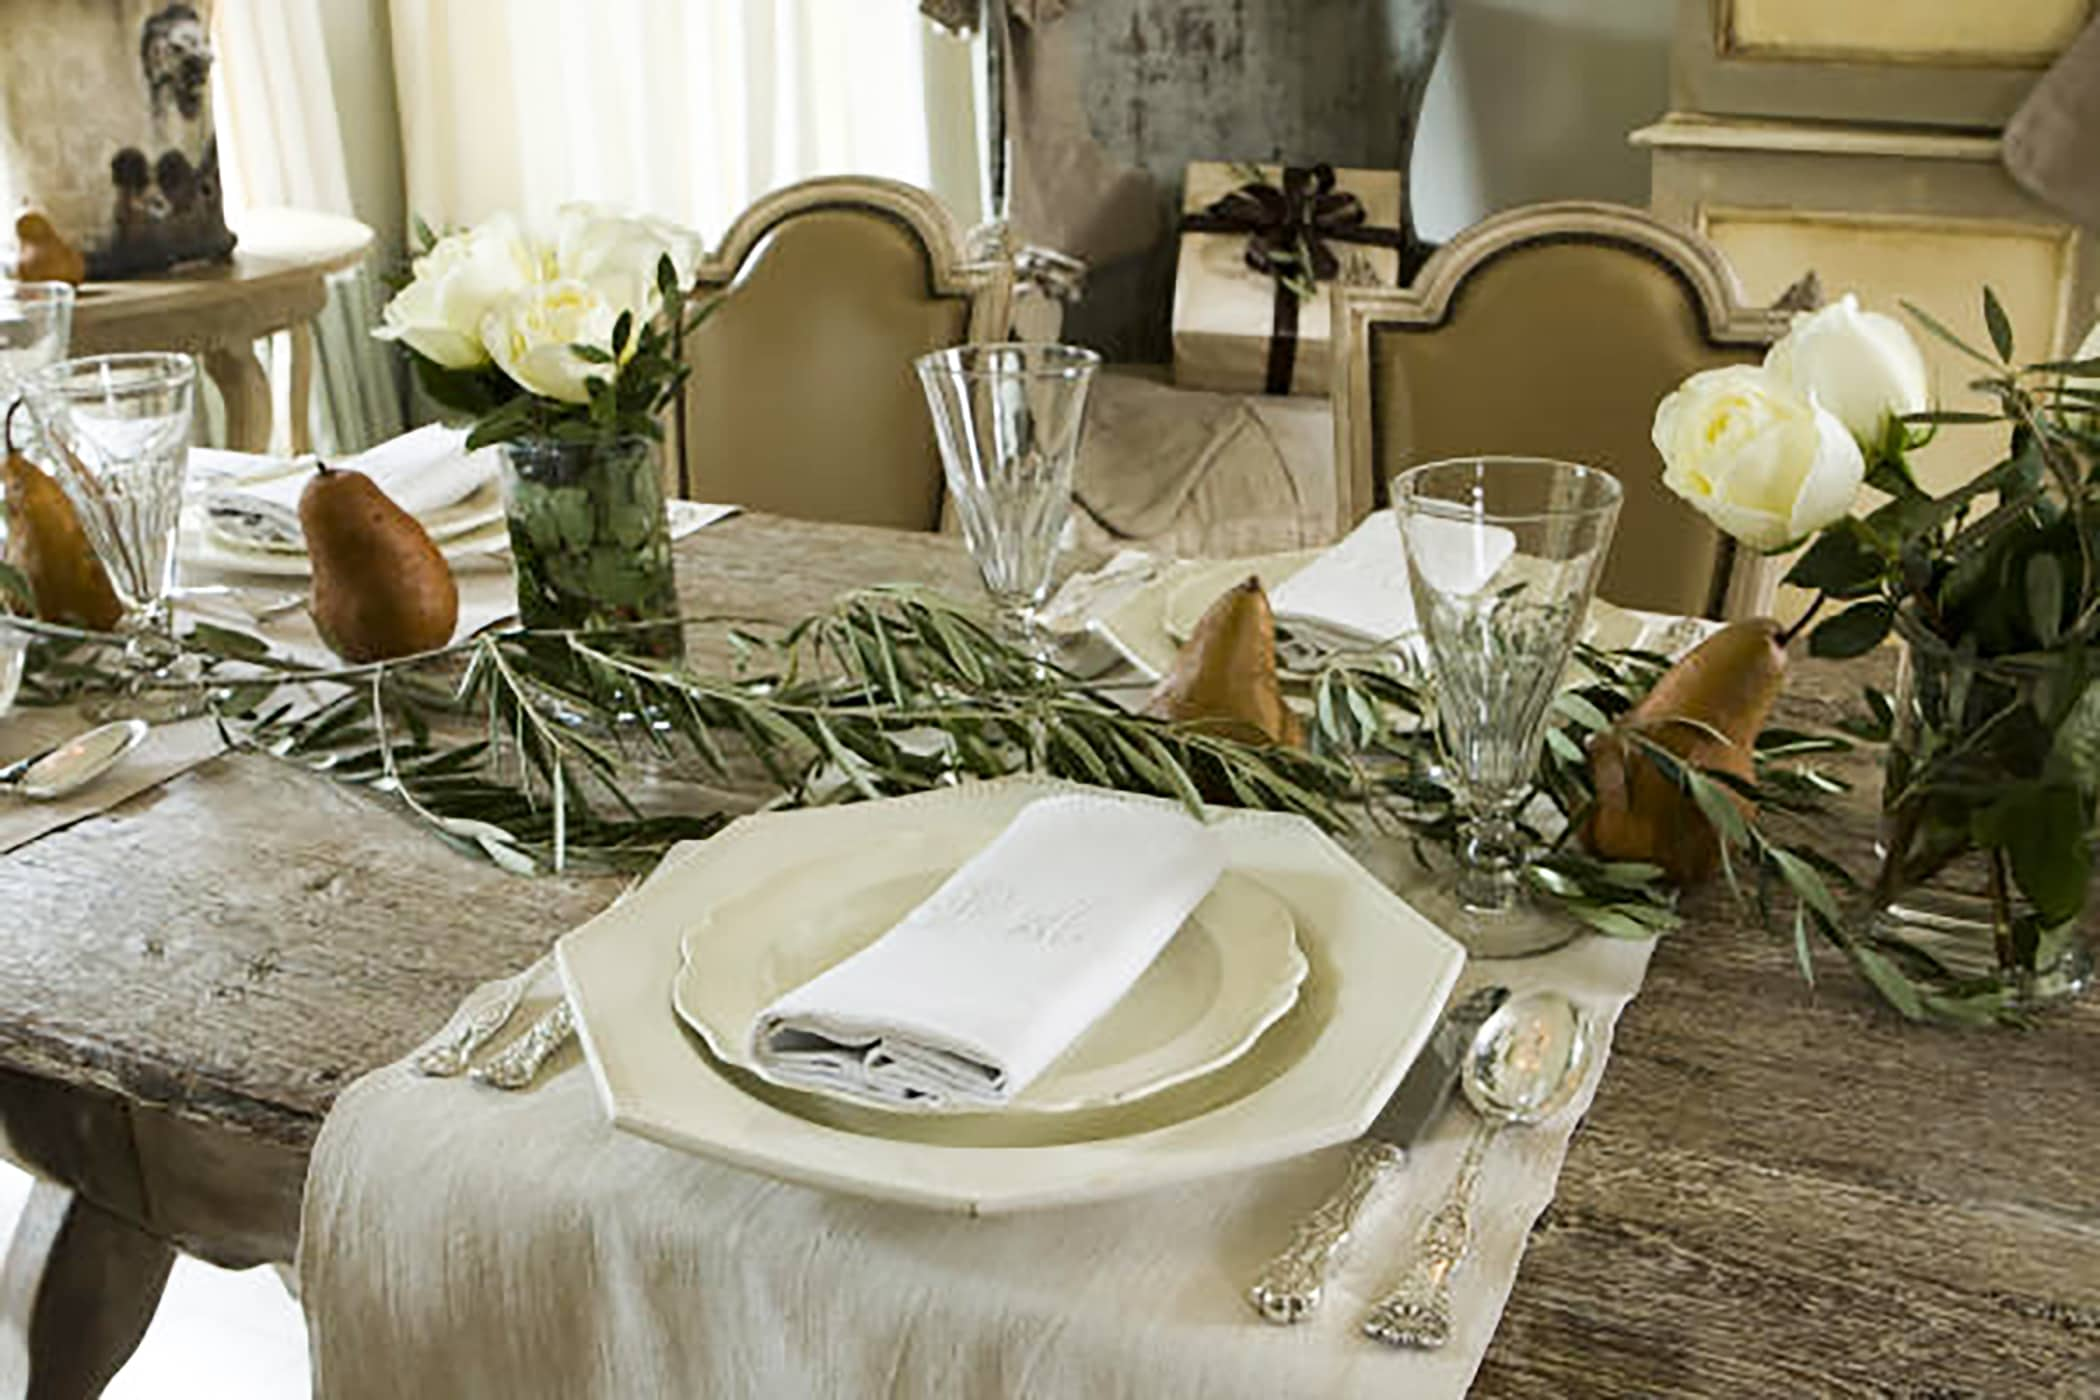 pam pierce christmas tablescape on cindy hattersley's blog